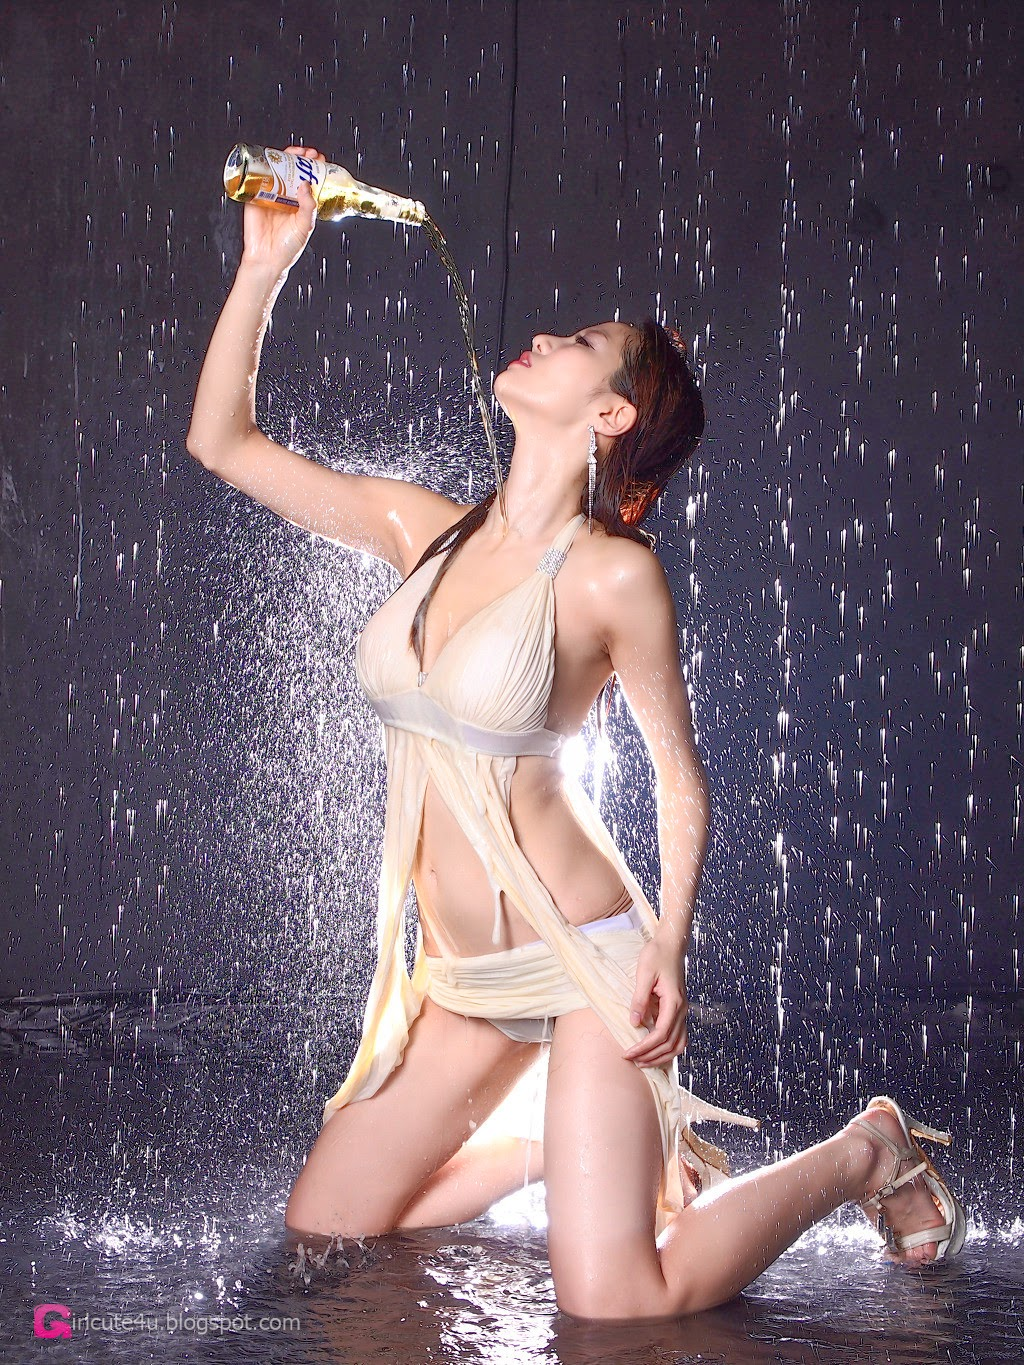 2 Han Min Young - Dry Set, Wet Set - very cute asian girl-girlcute4u.blogspot.com